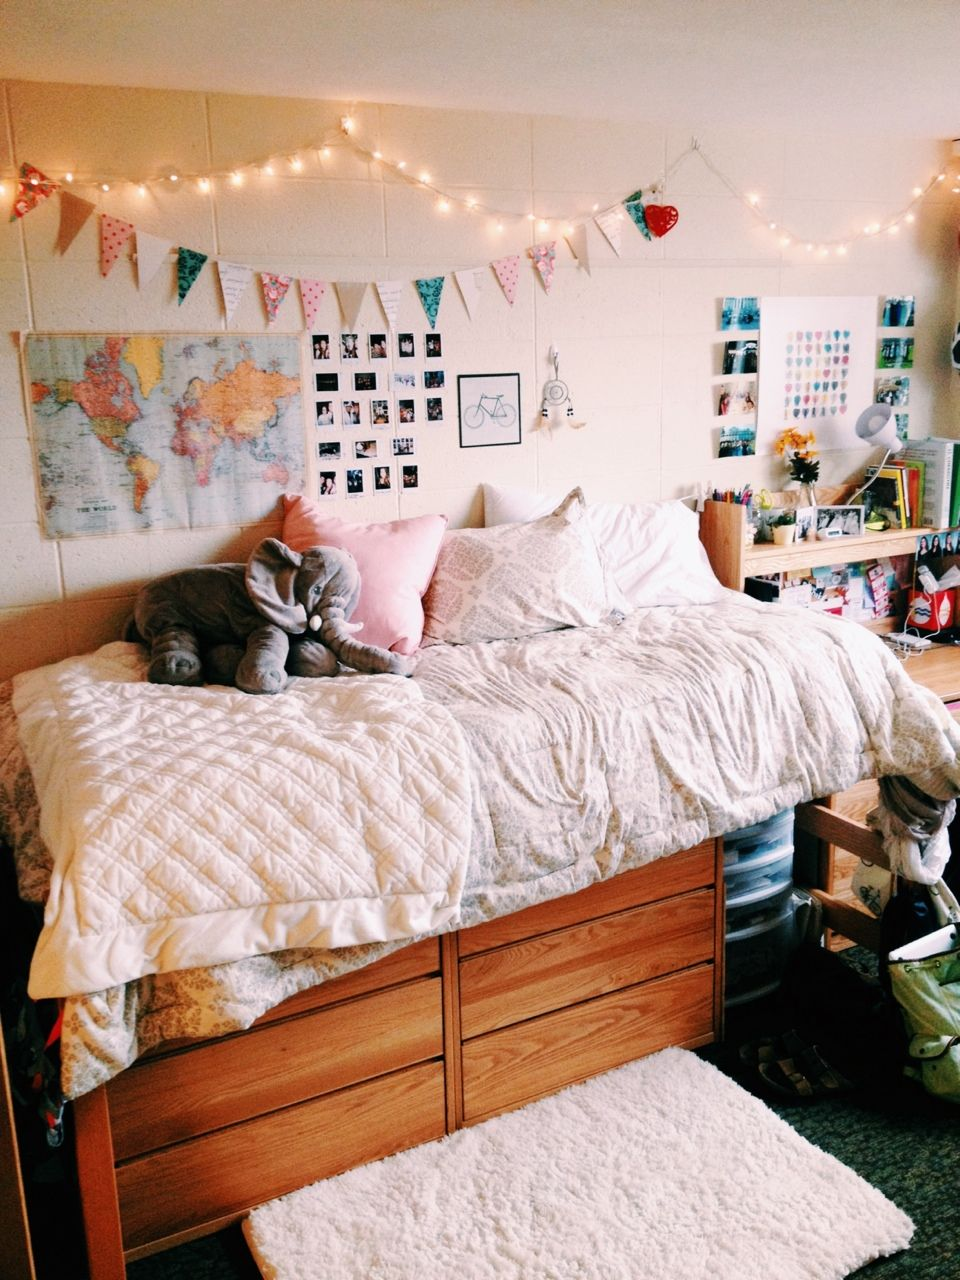 Http fyeahcooldormroomscom image 93836973641 dorm for College apartment rooms